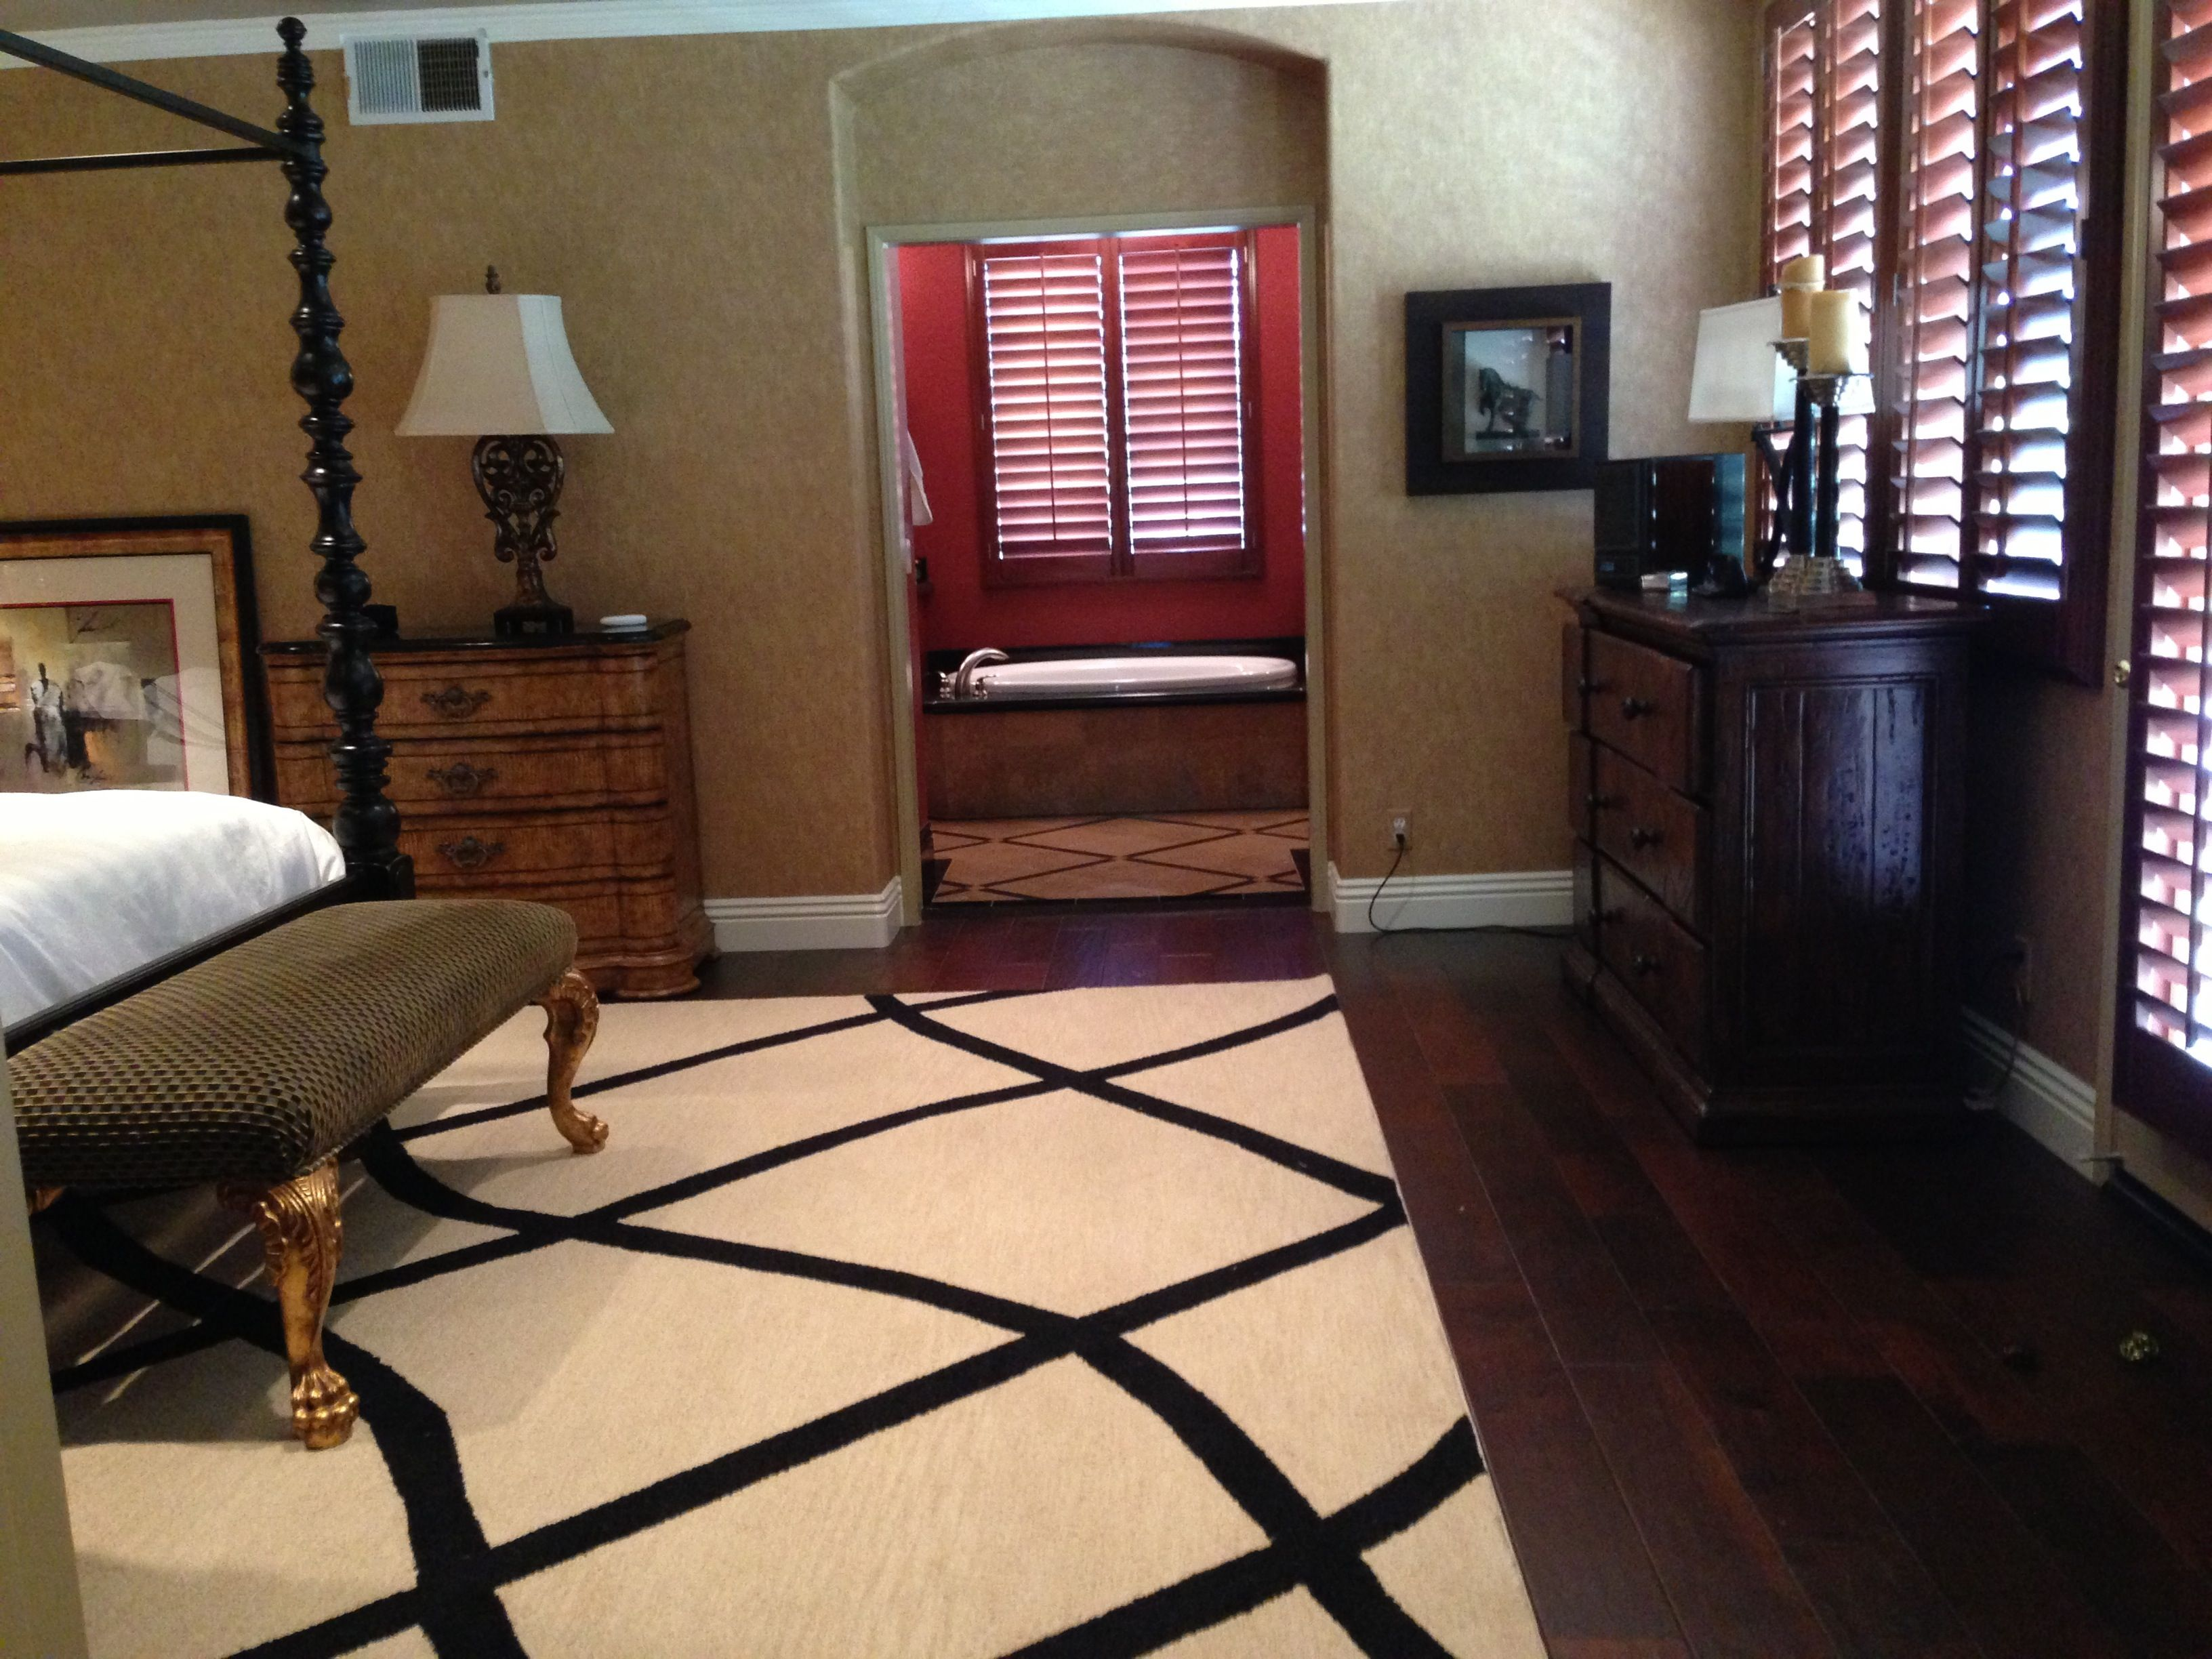 Custom Made Area Rug Made In The Usa Of 100 New Zealand